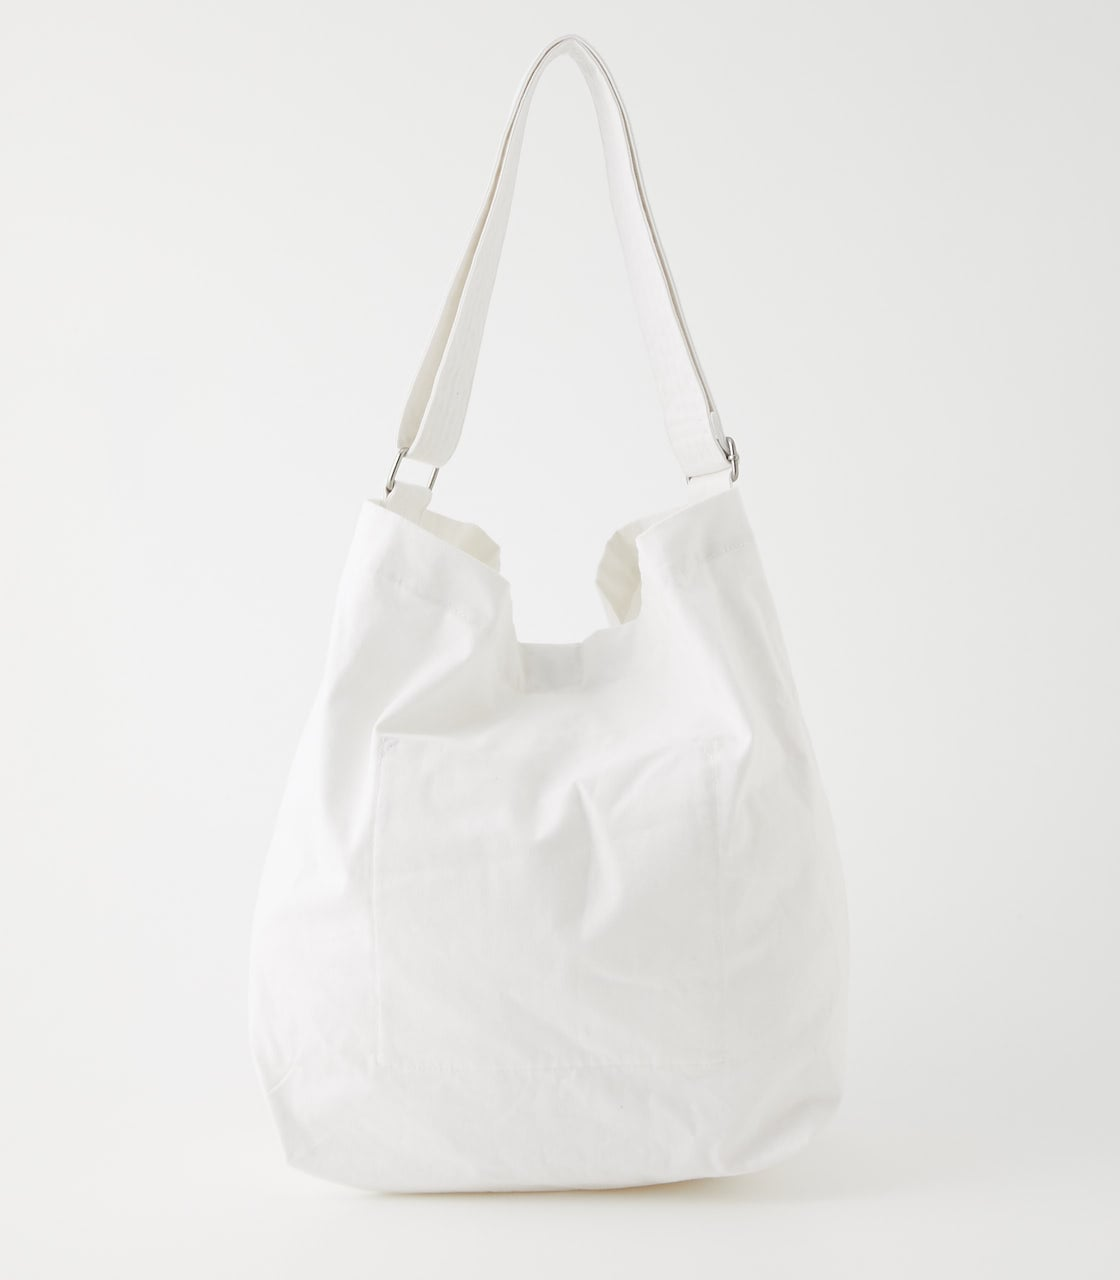 【AZUL BY MOUSSY】DRESSING TOTE BAG 詳細画像 WHT 2